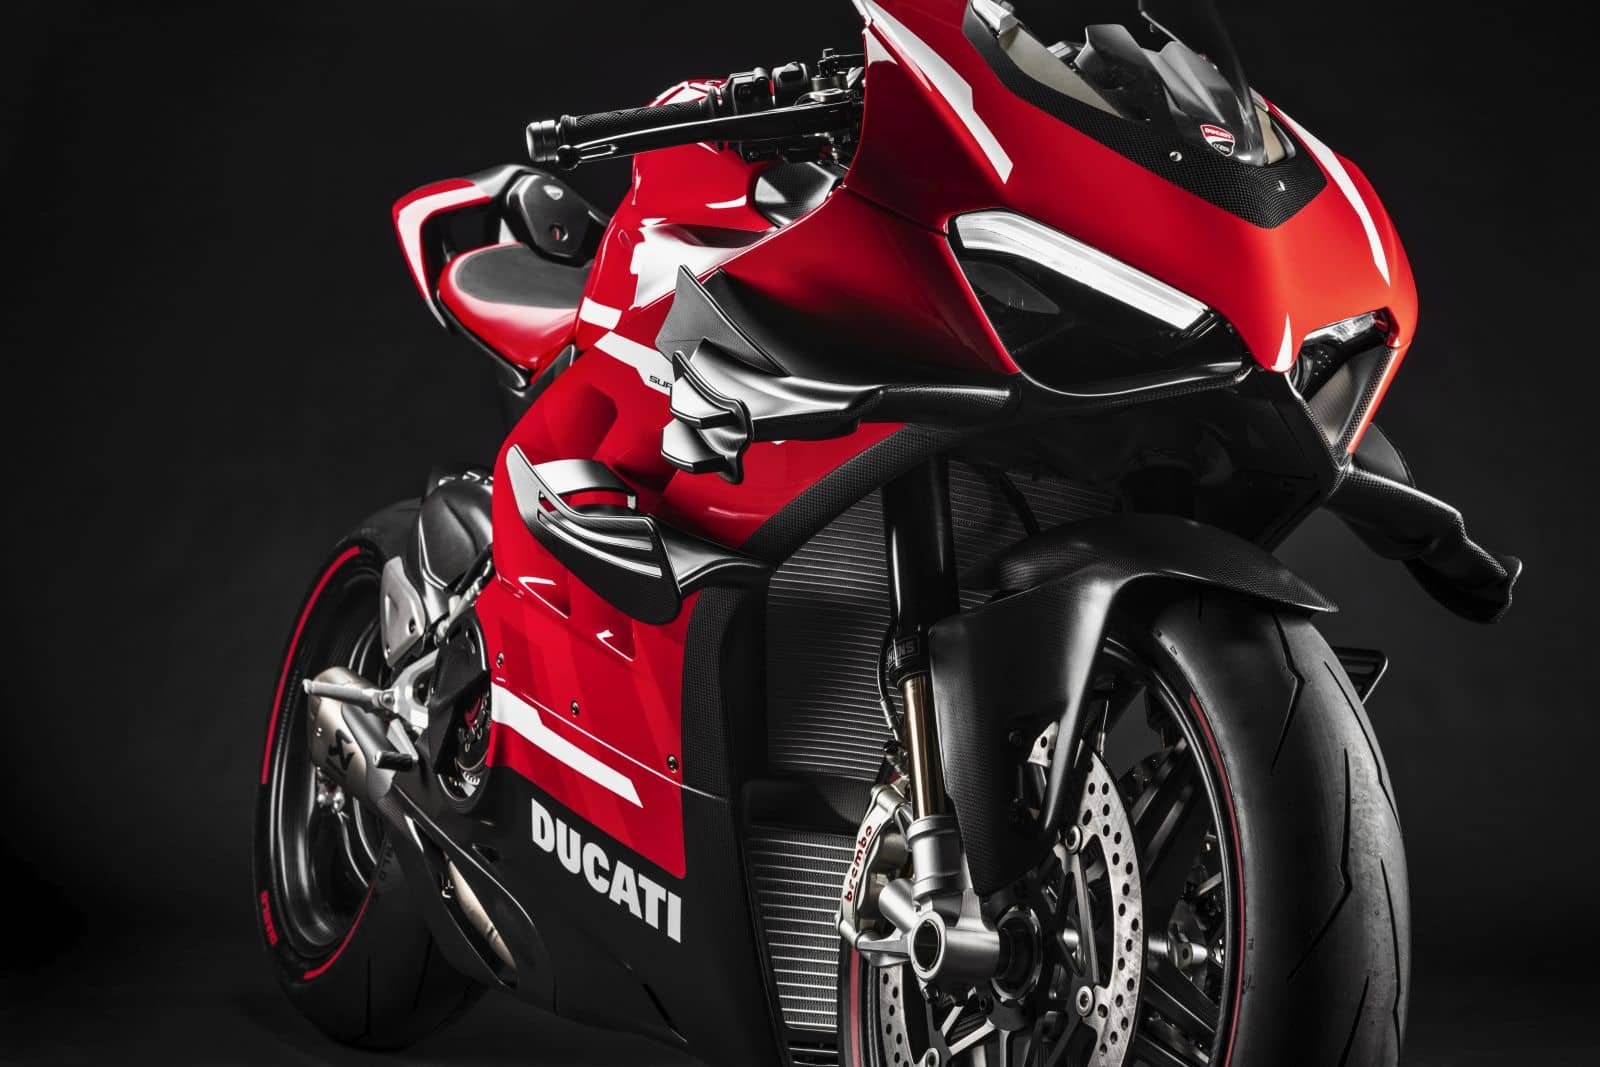 DucatiSuperlegera010